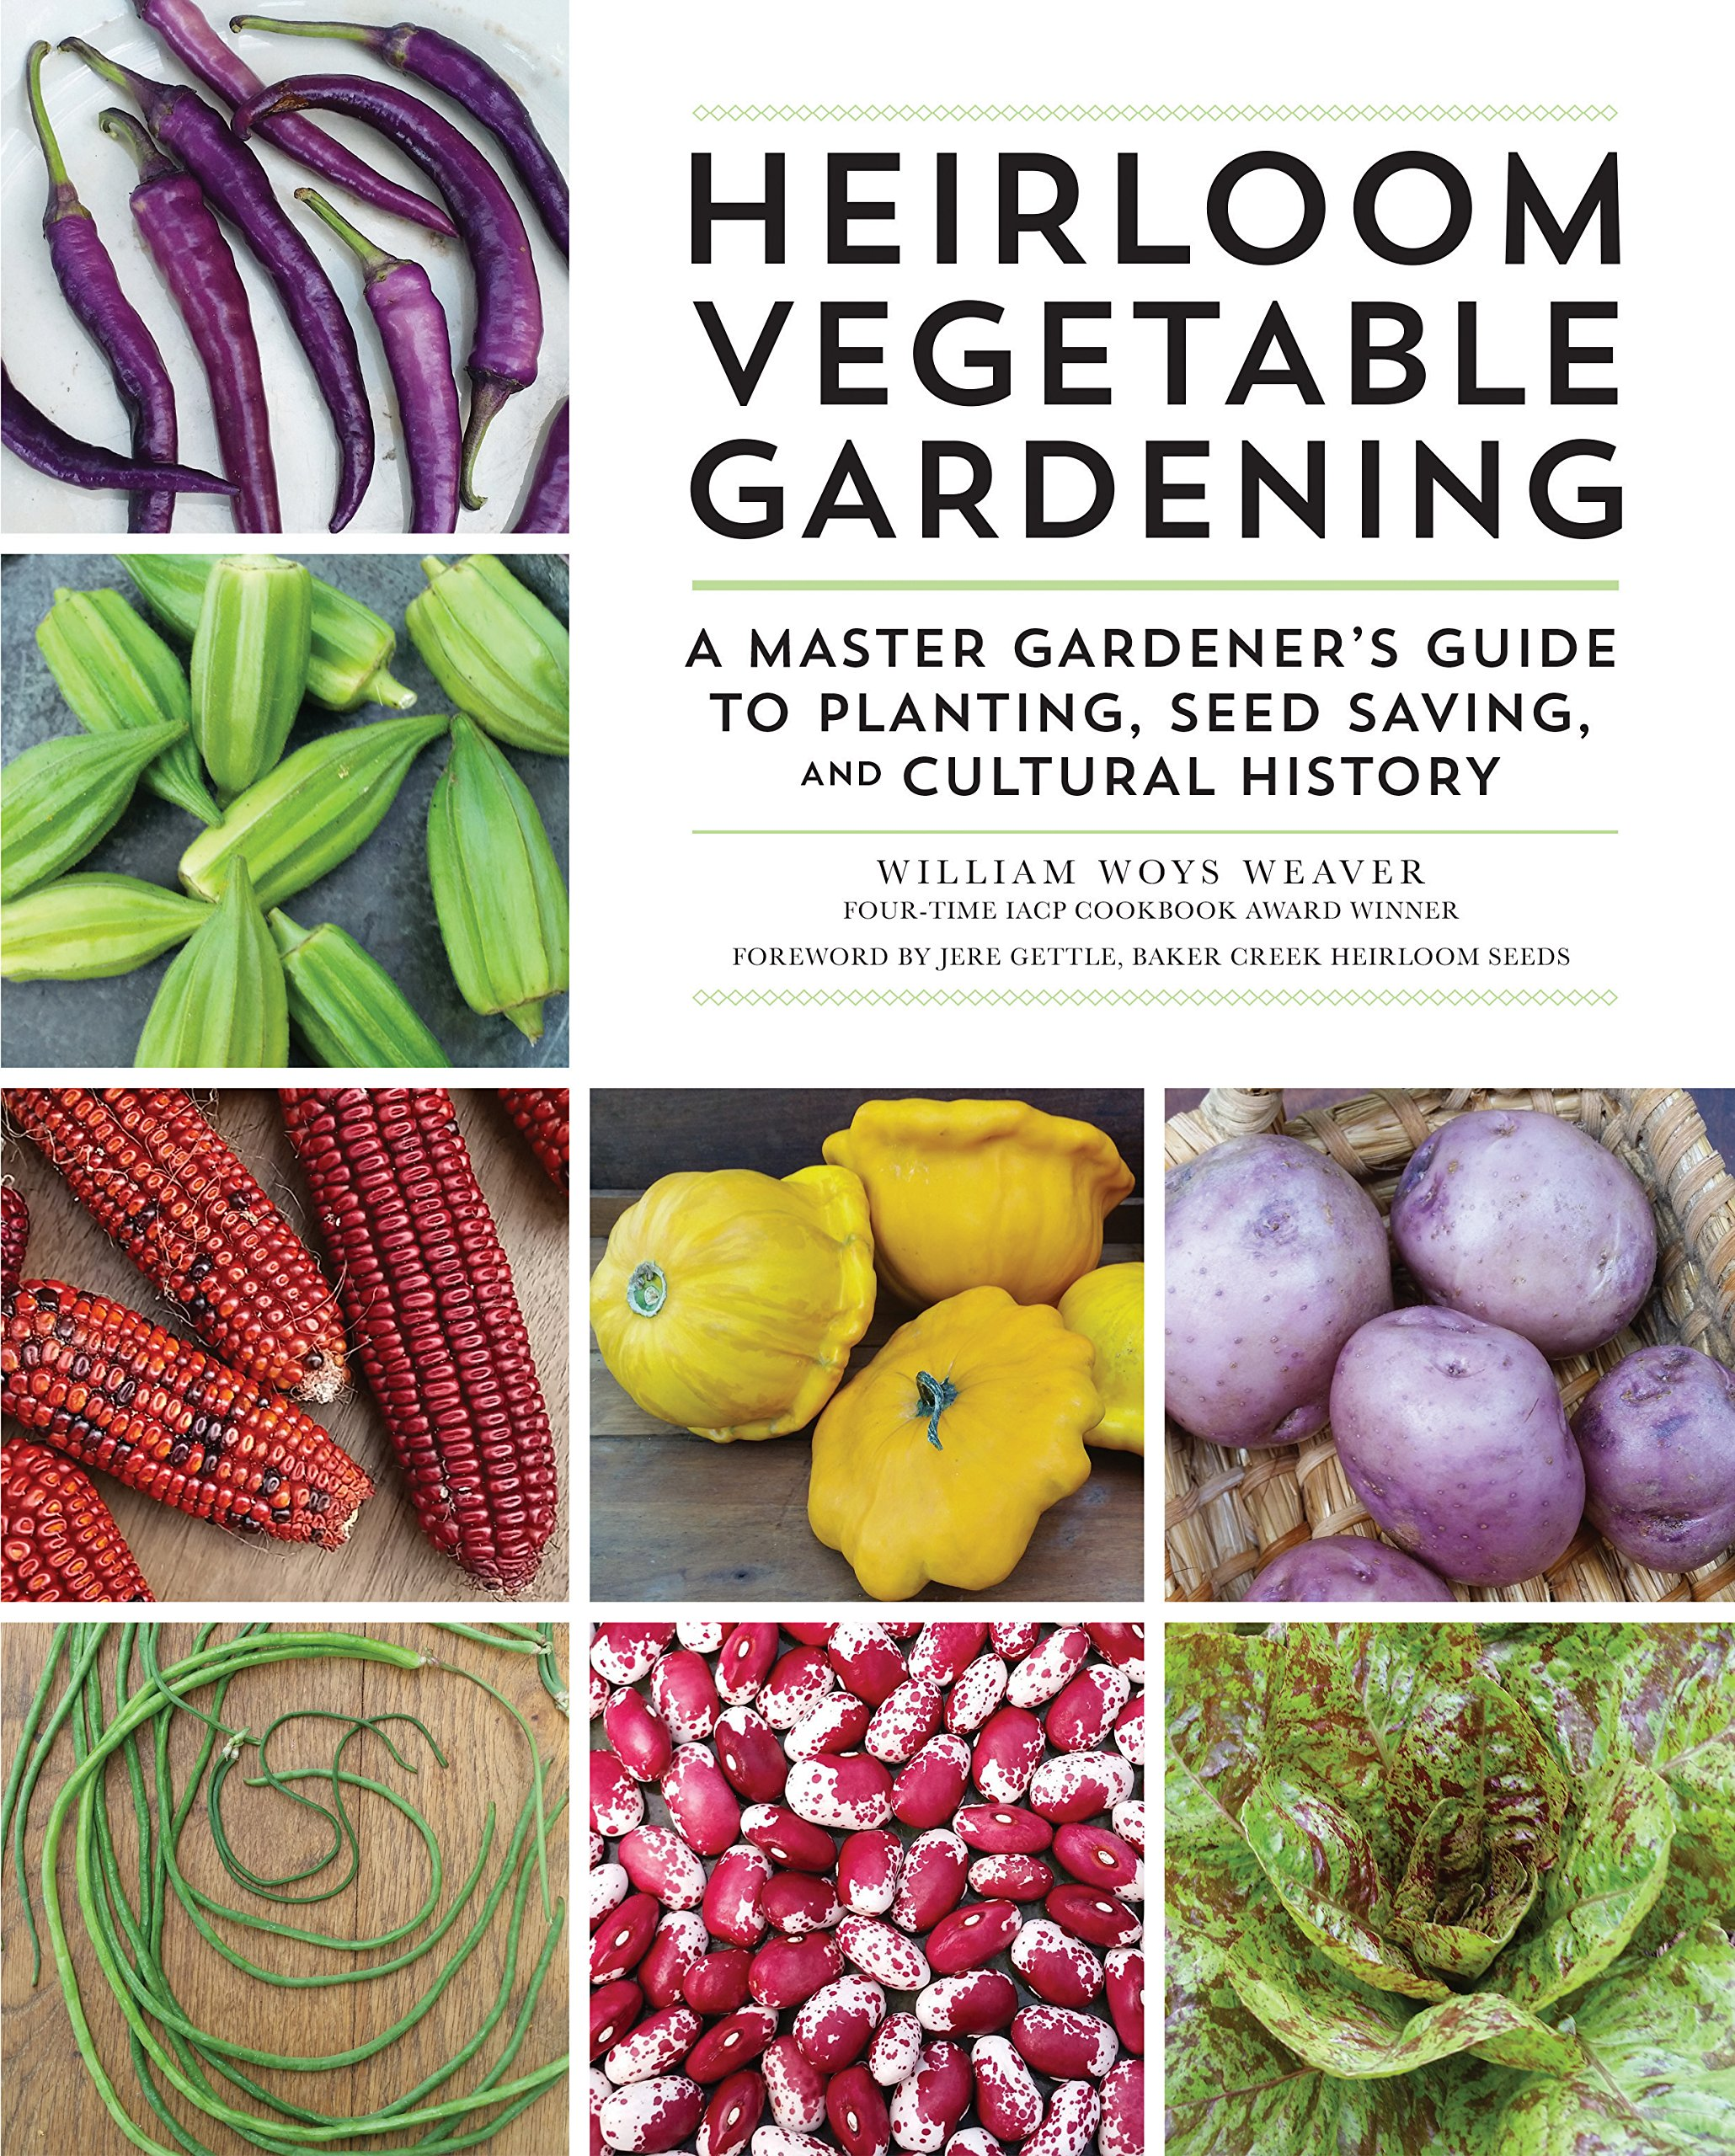 Heirloom Vegetable Gardening: A Master Gardener's Guide to Planting, Seed Saving, and Cultural History by Voyageur Press